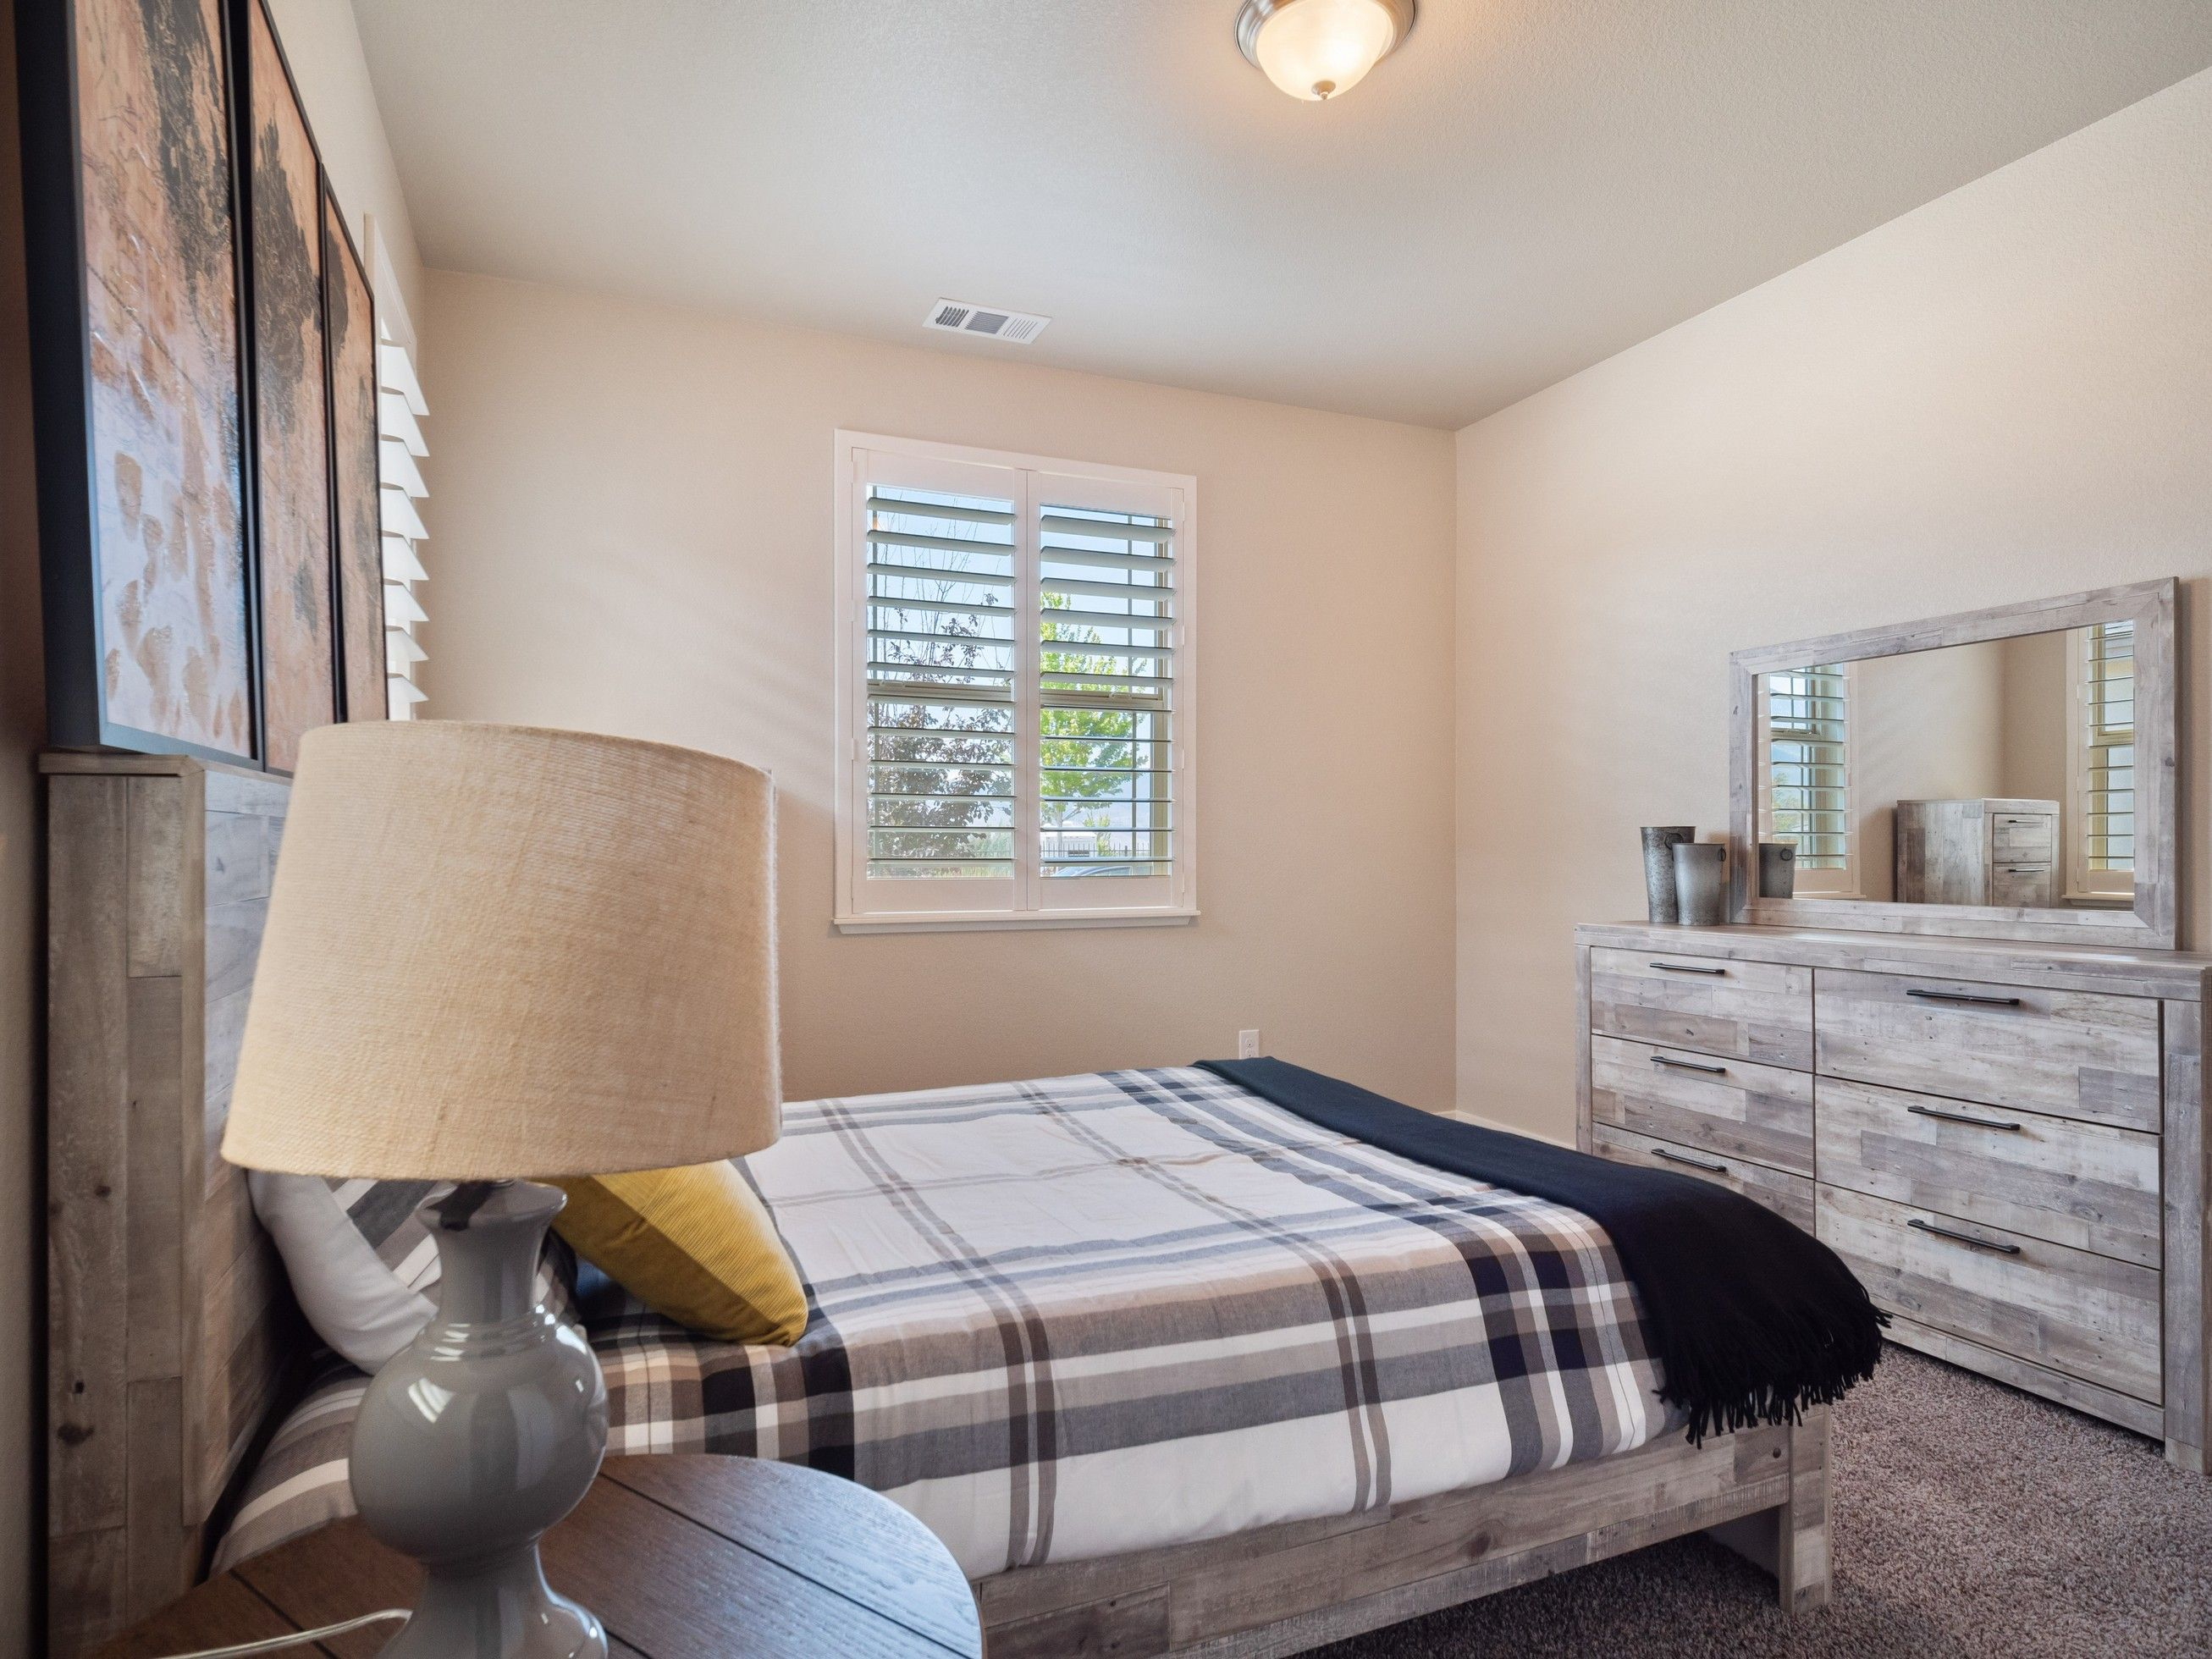 Bedroom featured in the Primrose By Carter Hill Homes in Reno, NV